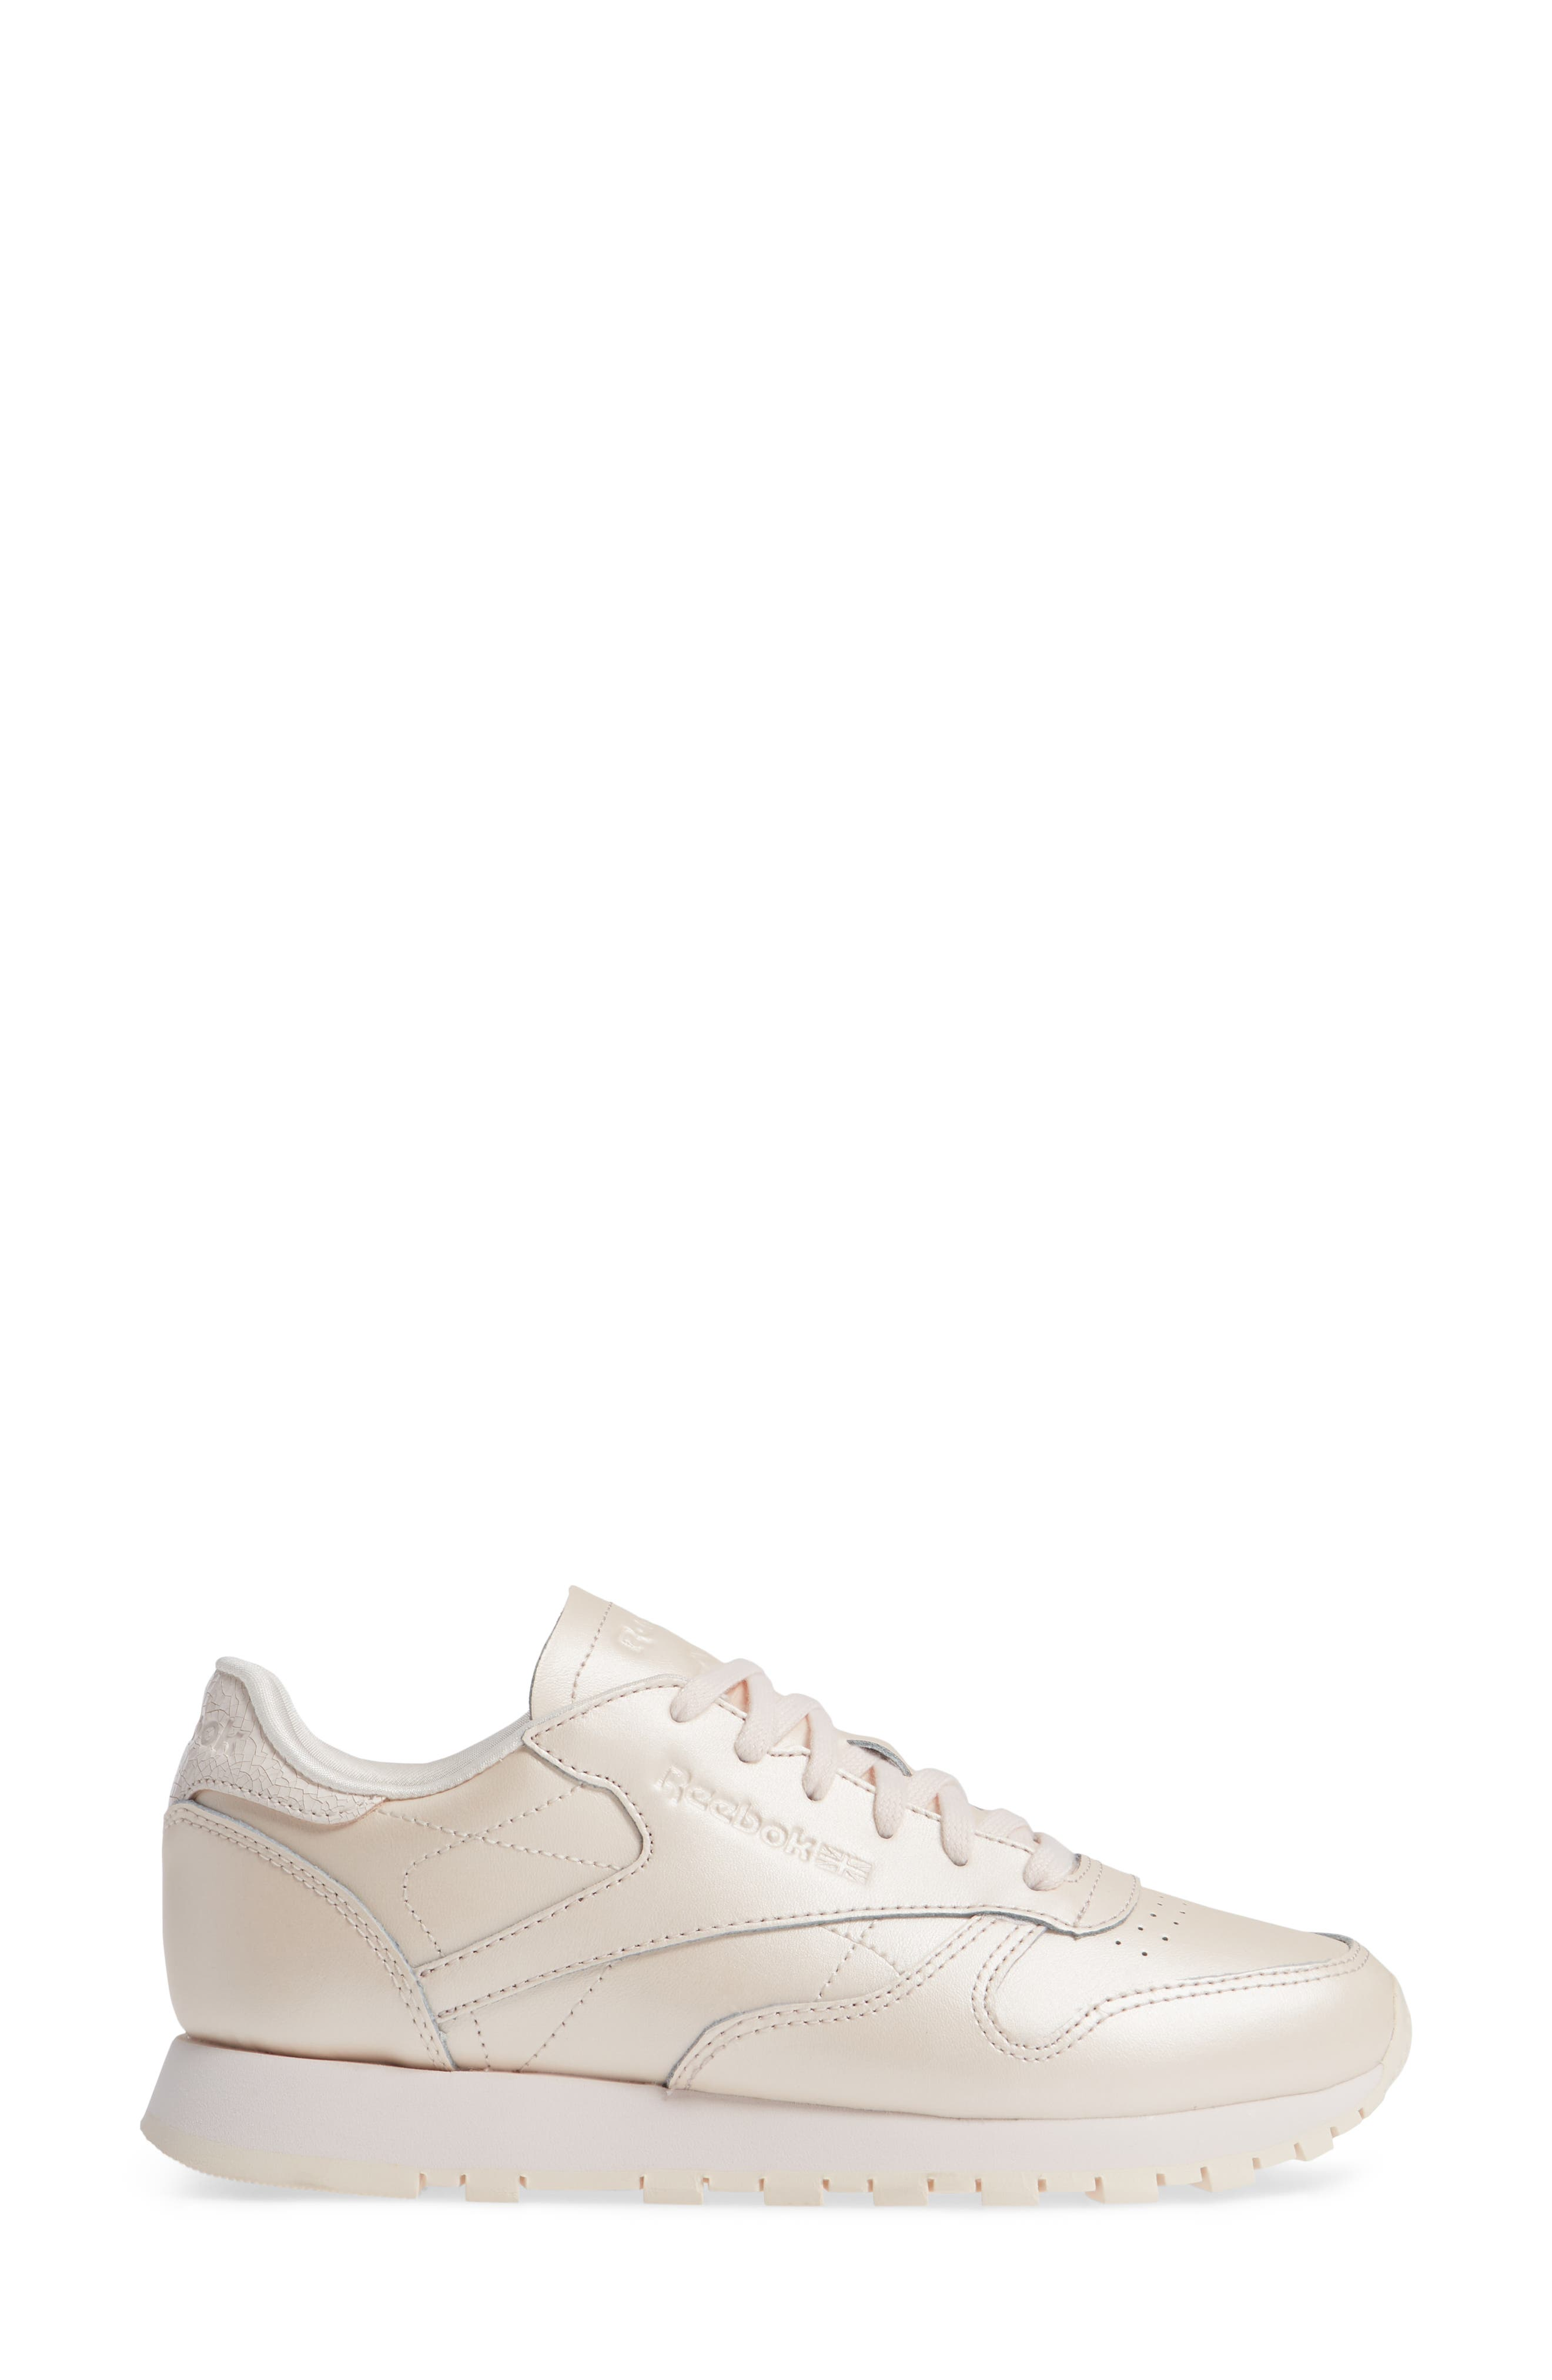 Classic Leather Sneaker,                             Alternate thumbnail 5, color,                             Pale Pink